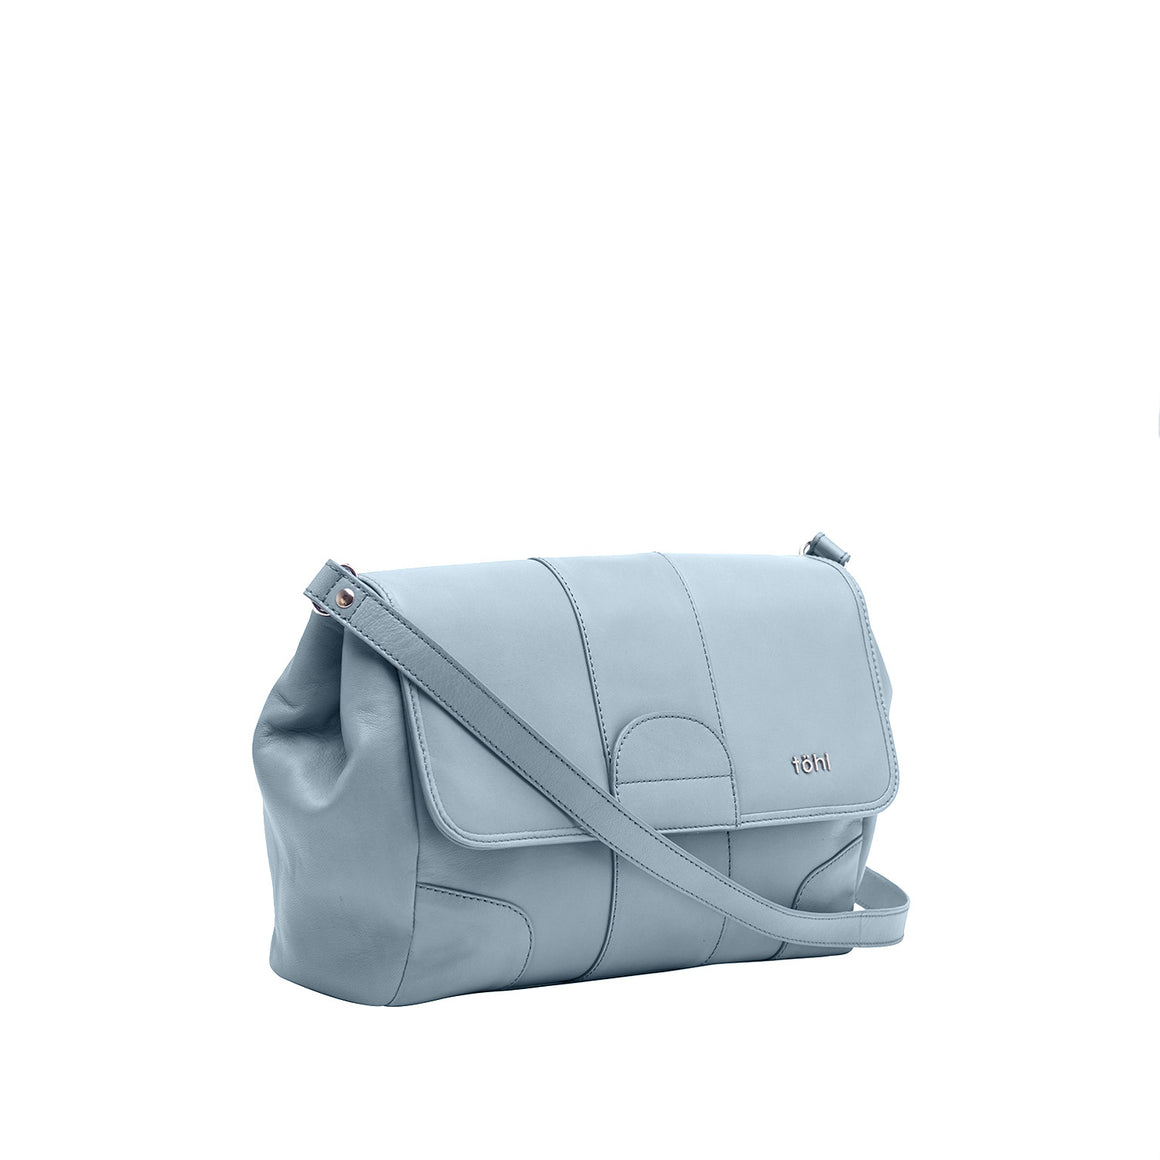 HH 0012 - TOHL JOPLIN WOMEN'S DAY BAG - WATER